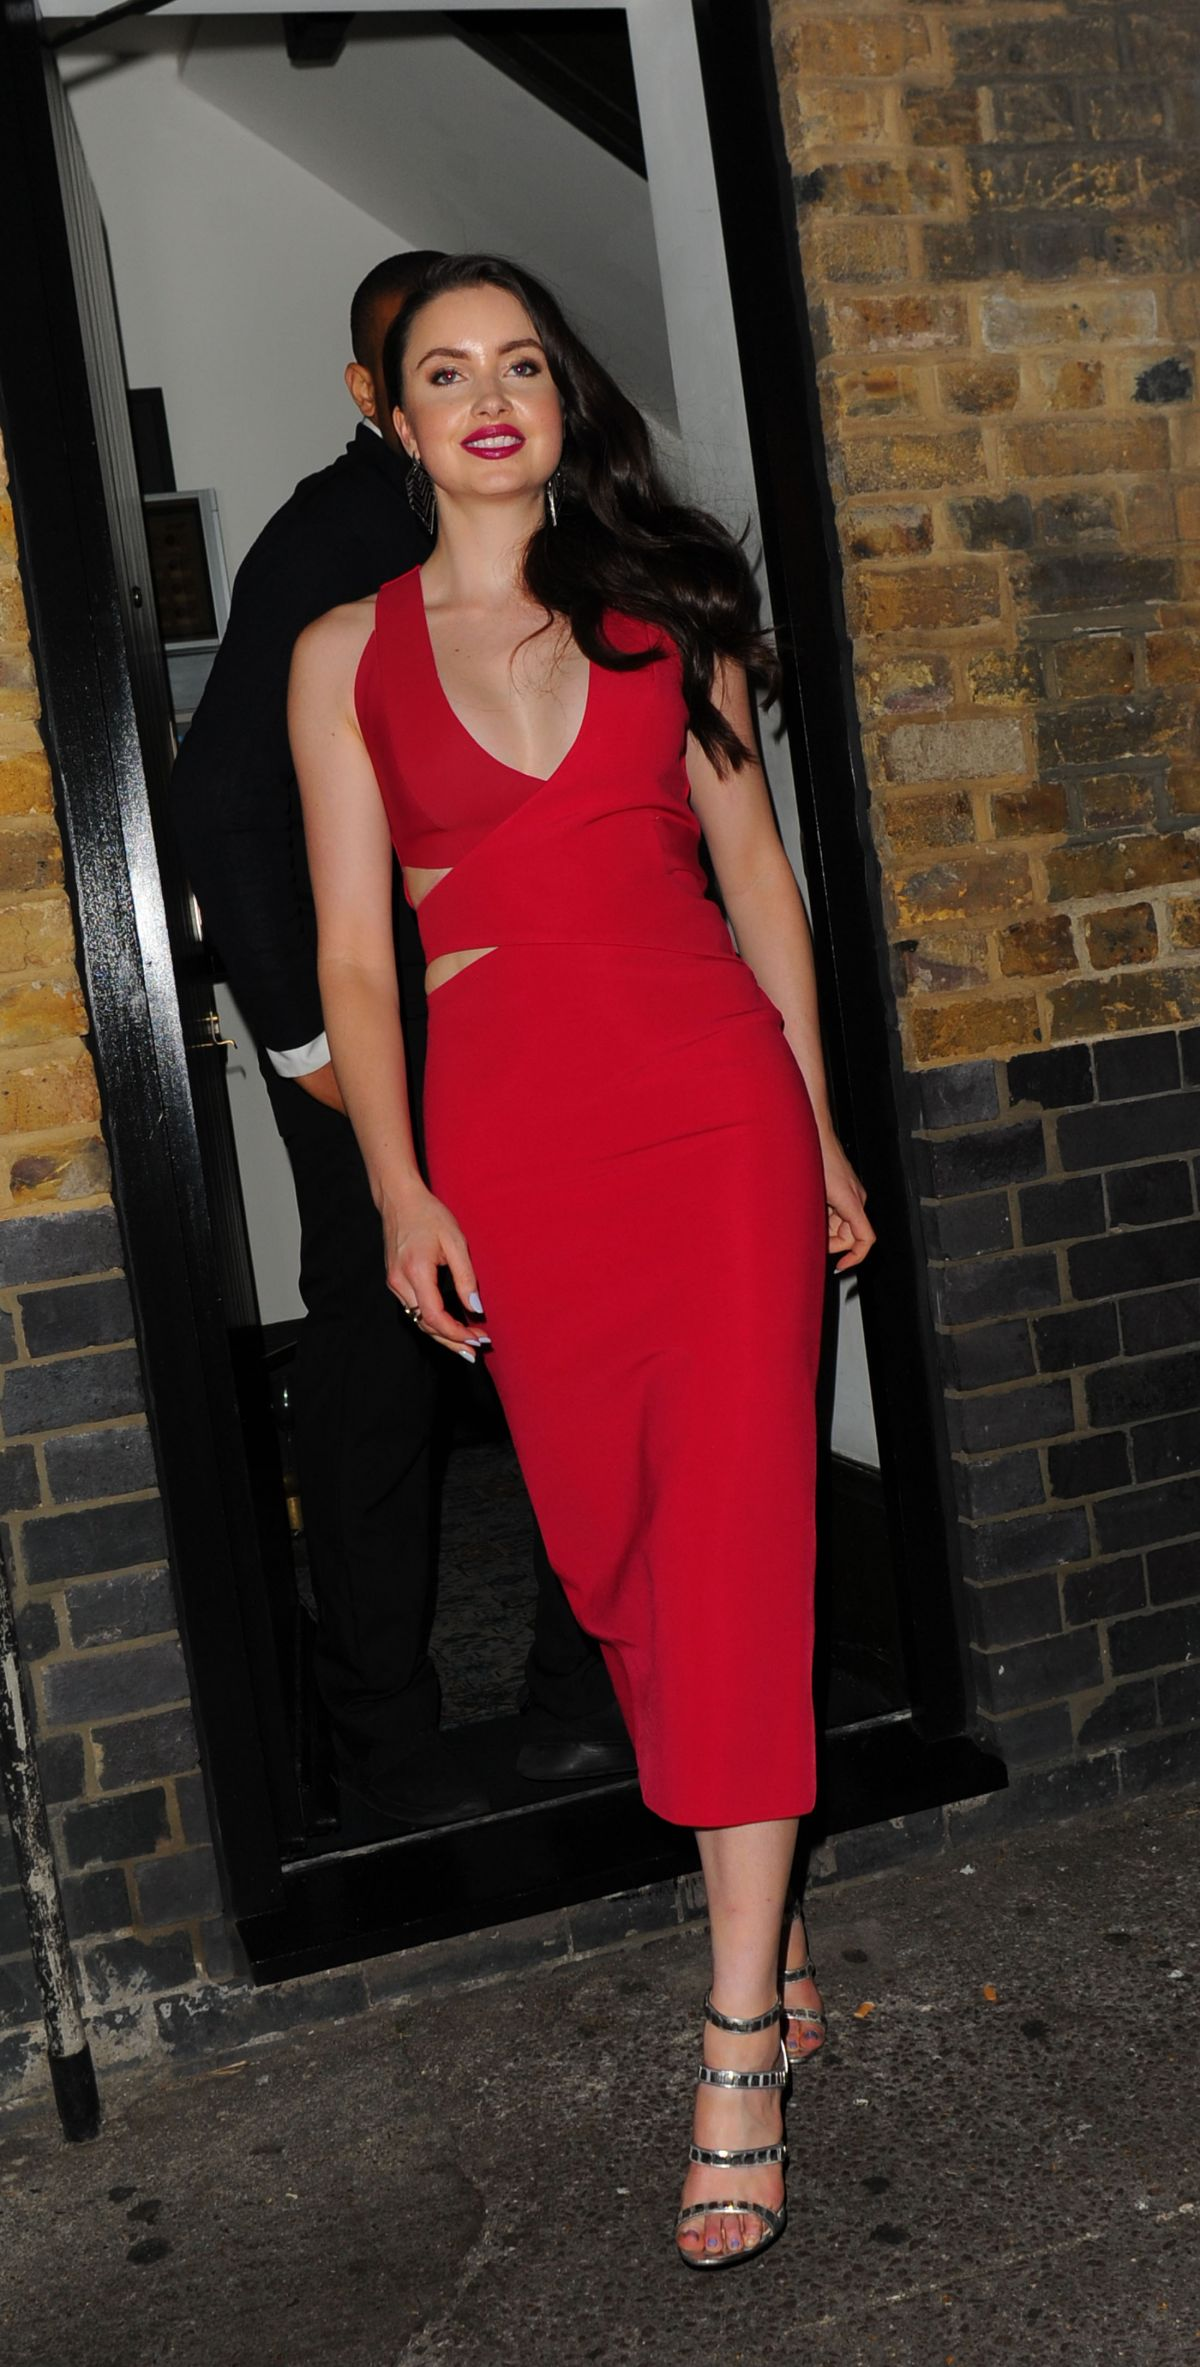 EMMA MILLER at Chiltern Firehouse in London 07/06/2016